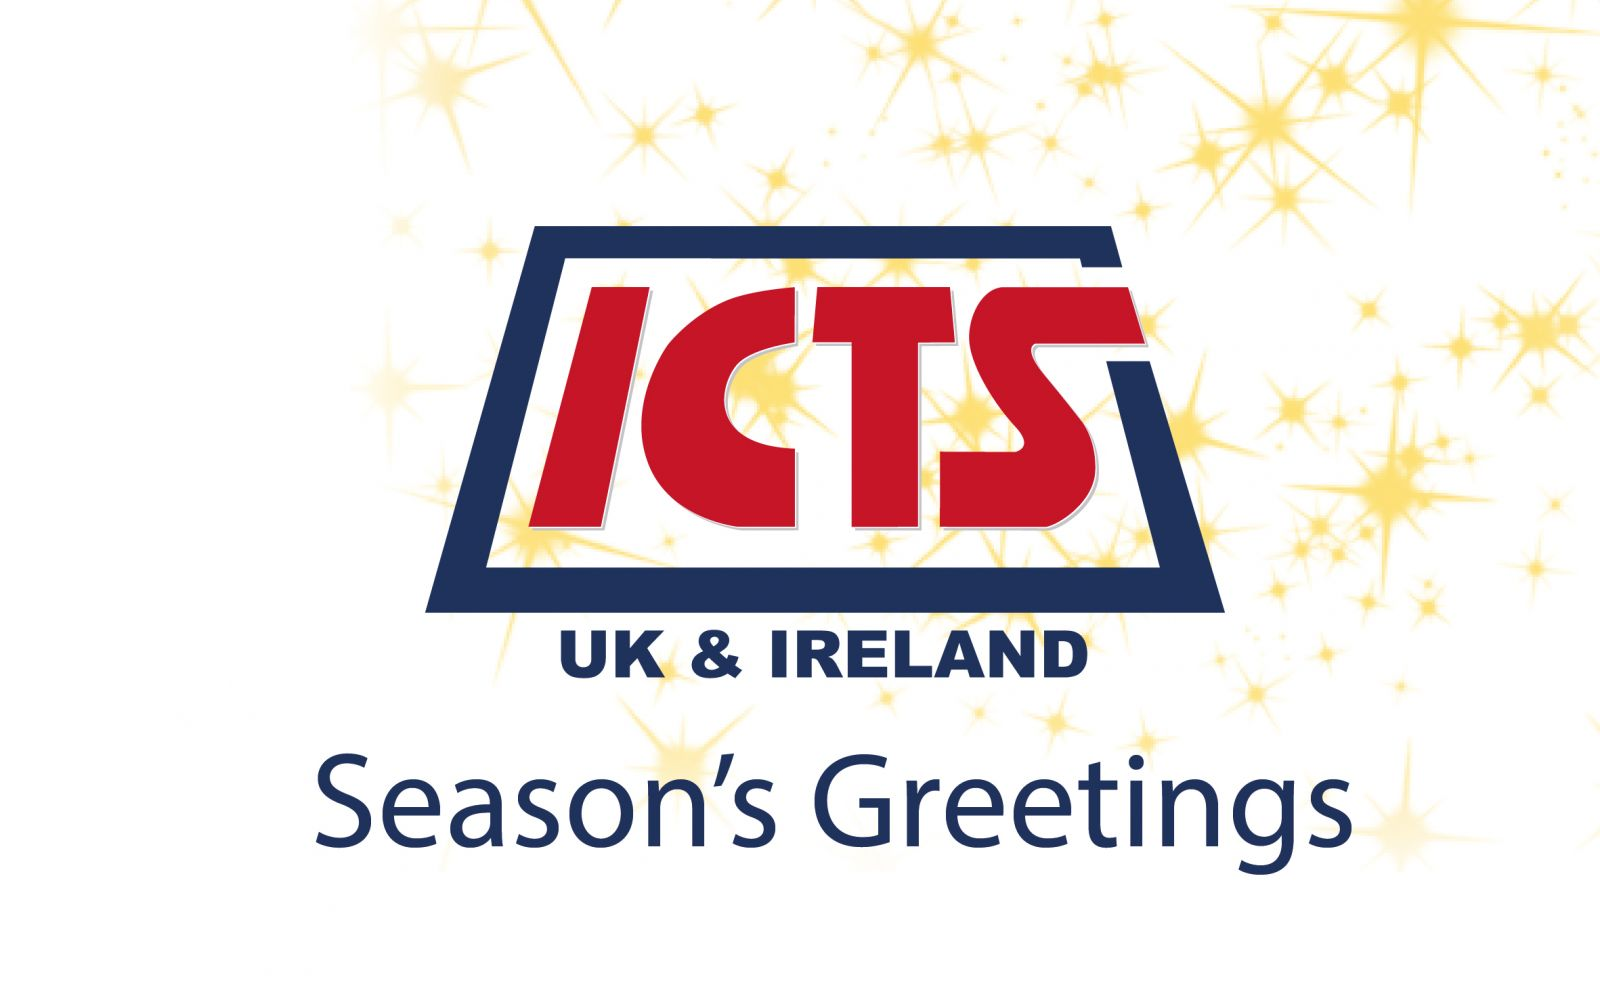 Season's Greetings from ICTS UK & Ireland